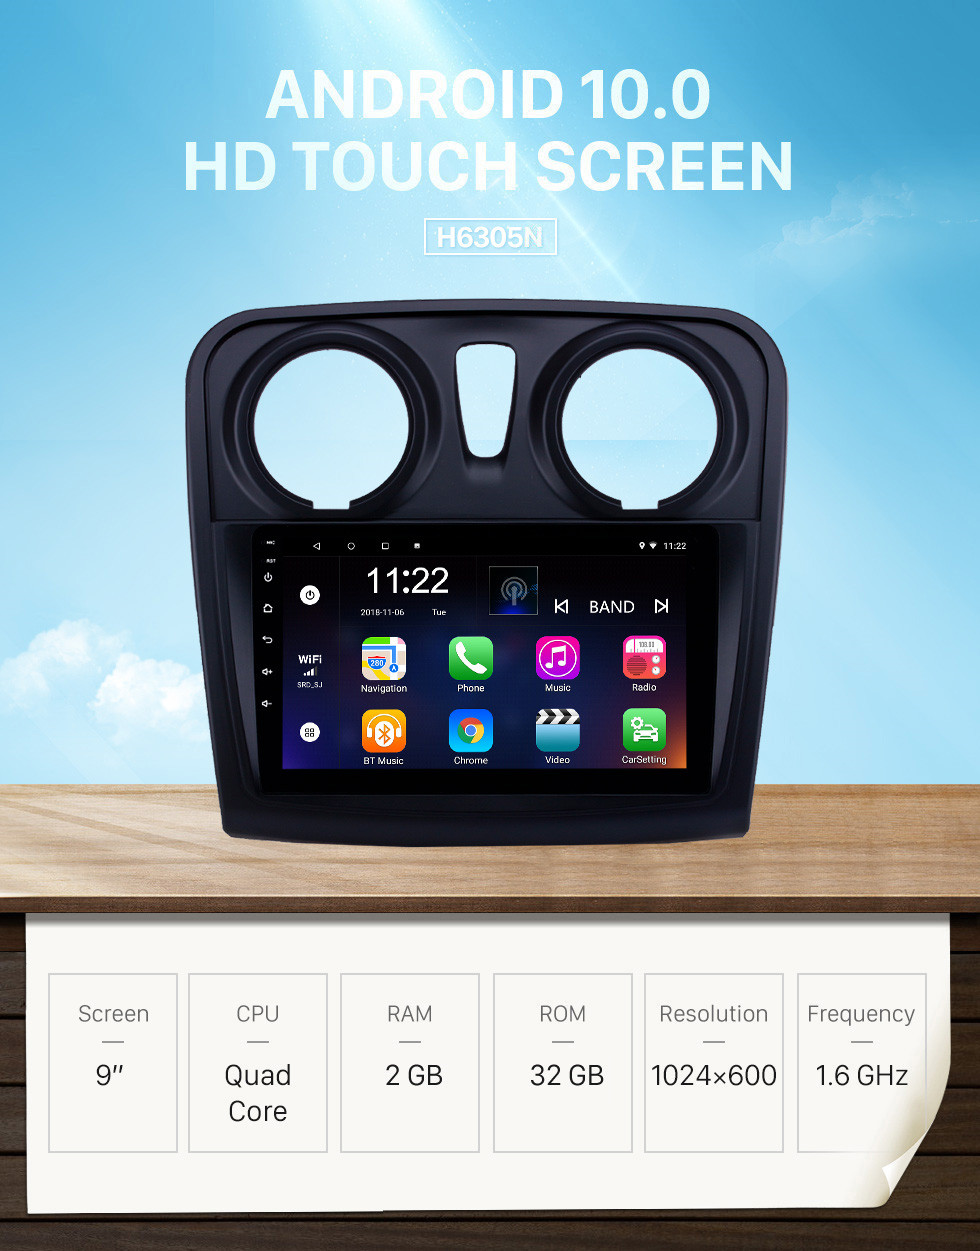 Seicane HD Touchscreen 9 inch Android 10.0 GPS Navigation Radio for 2012-2017 Renault Dacia Sandero with Bluetooth AUX support Carplay TPMS